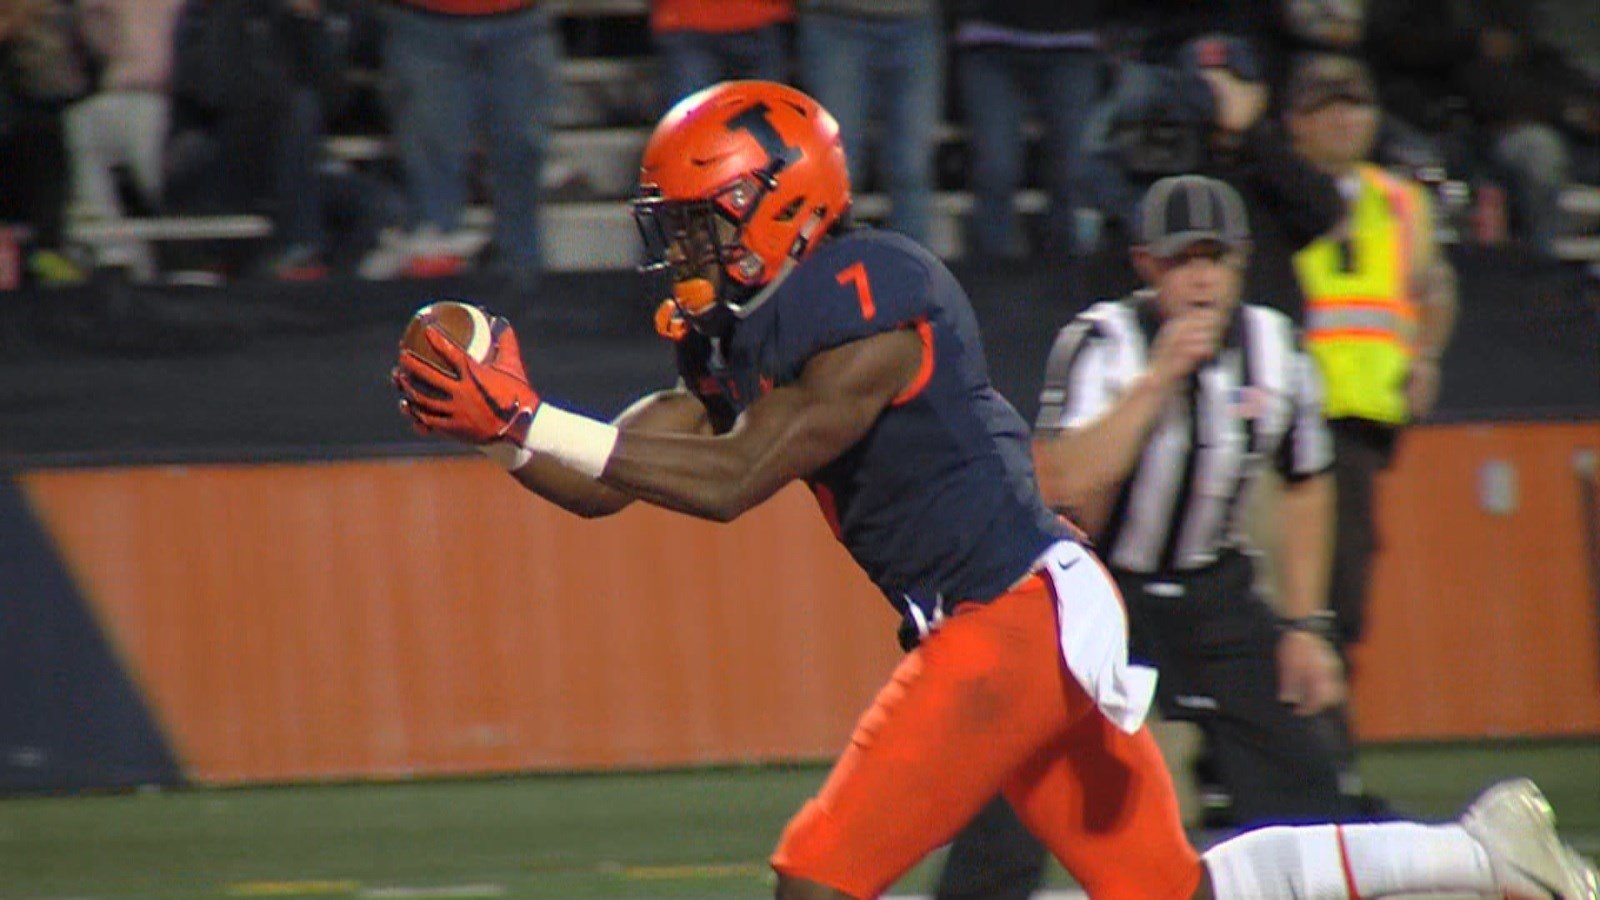 Junior safety Stanley Green scores a touchdown in the third quarter of Saturday night's win over Western Illinois. He scooped up a blocked punt (swatted by Dawson DeGroot) and helped give the Illini a 24-7 lead.